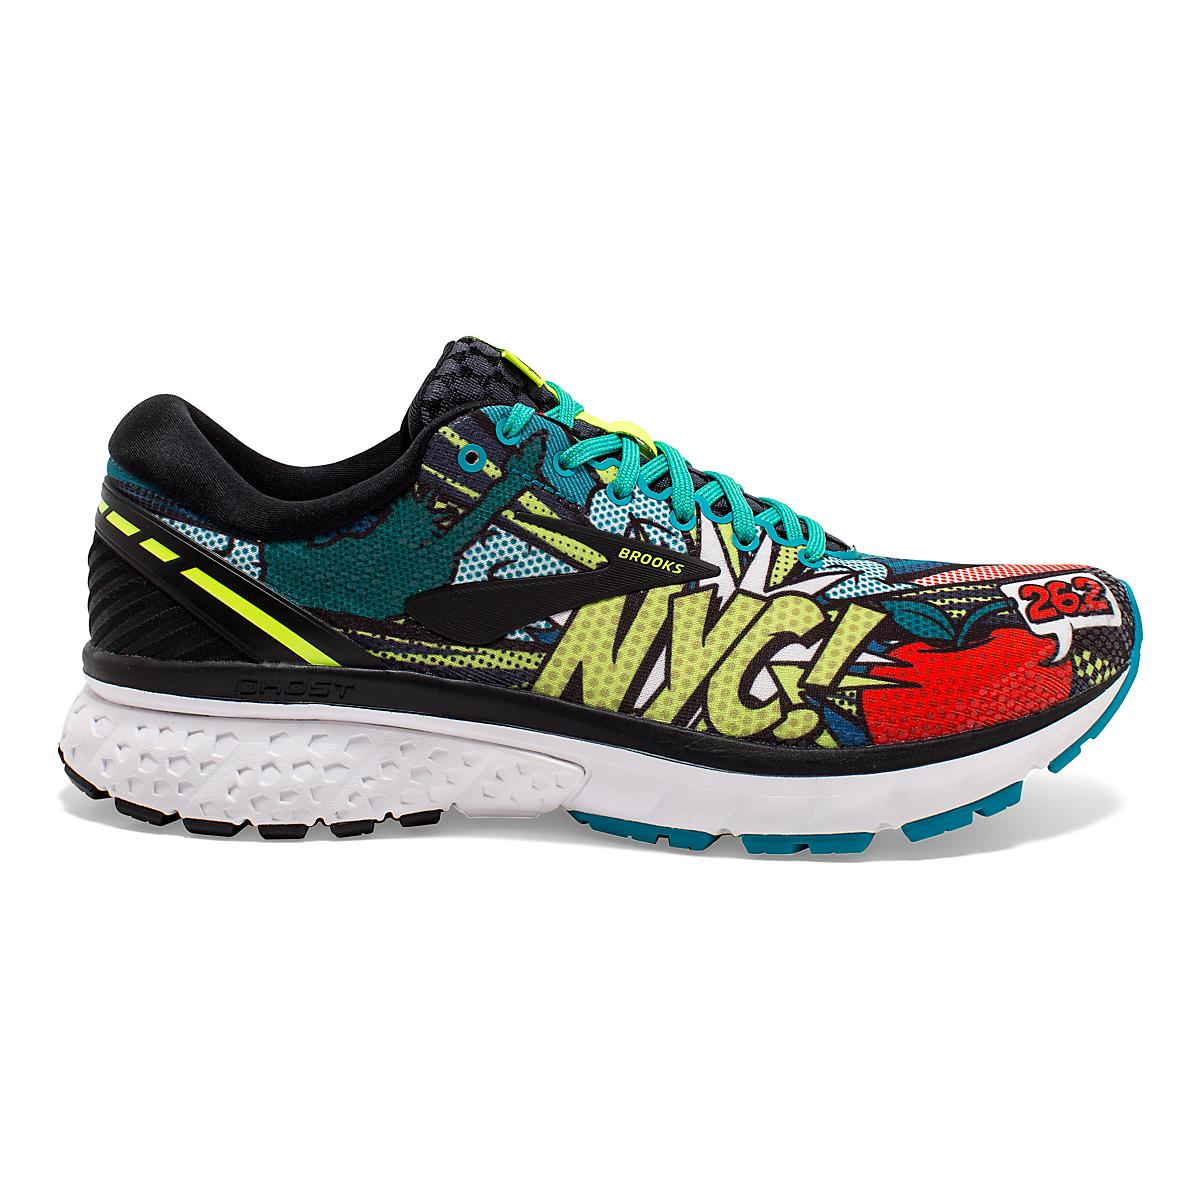 cb8bd090e80 Mens Brooks Ghost 11 NYC Running Shoe at Road Runner Sports